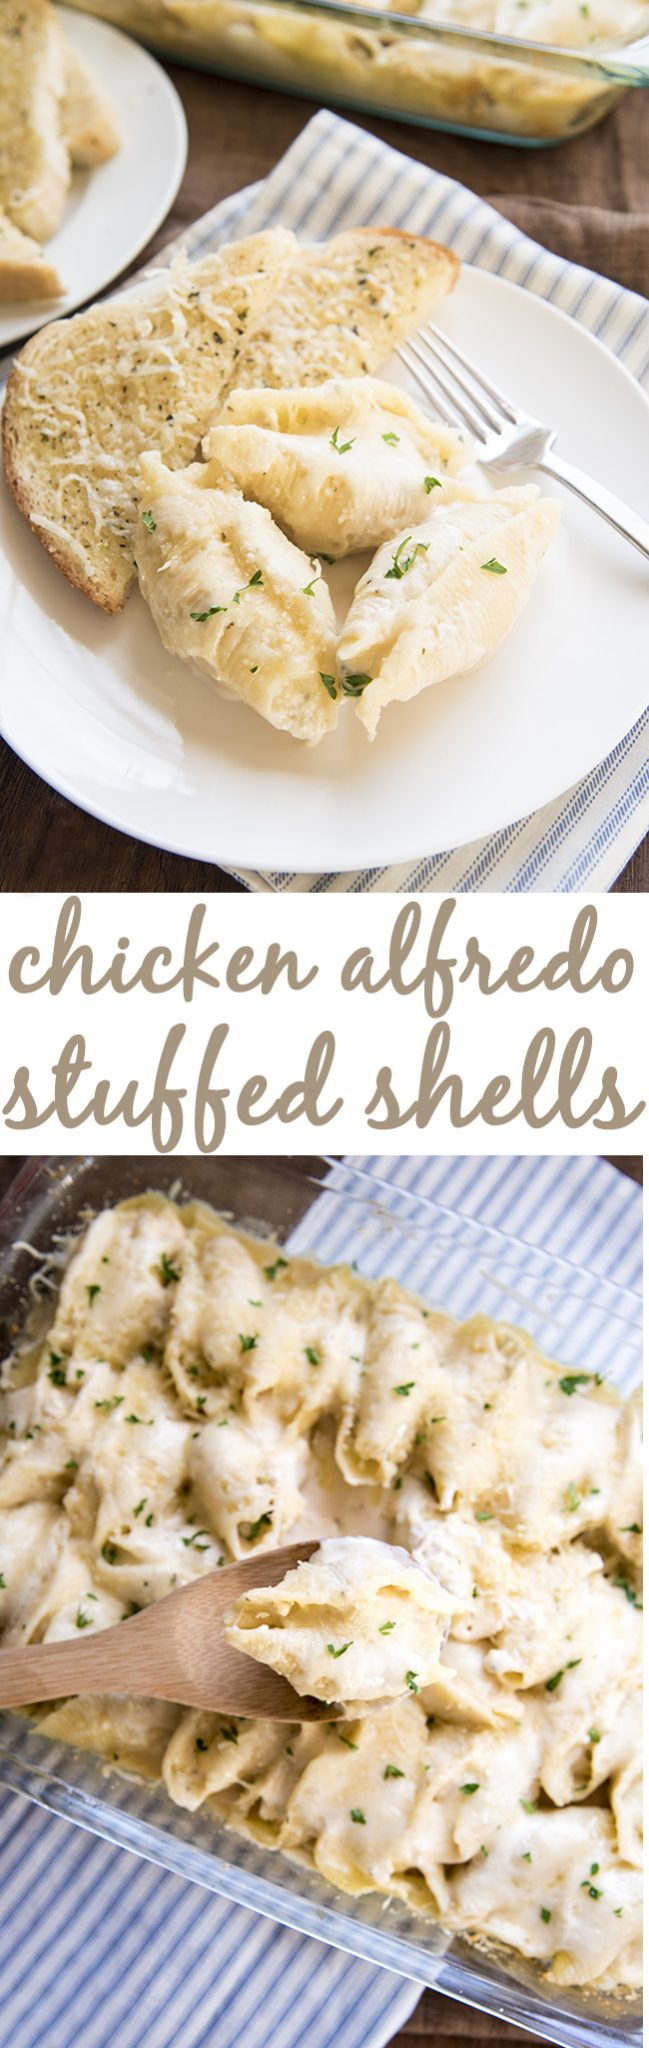 Chicken Alfredo Stuffed Shells are filled with a creamy ricotta cheese, and shredded chicken mixture. Topped with Alfredo sauce and mozzarella cheese for a great twist on traditional stuffed shells!